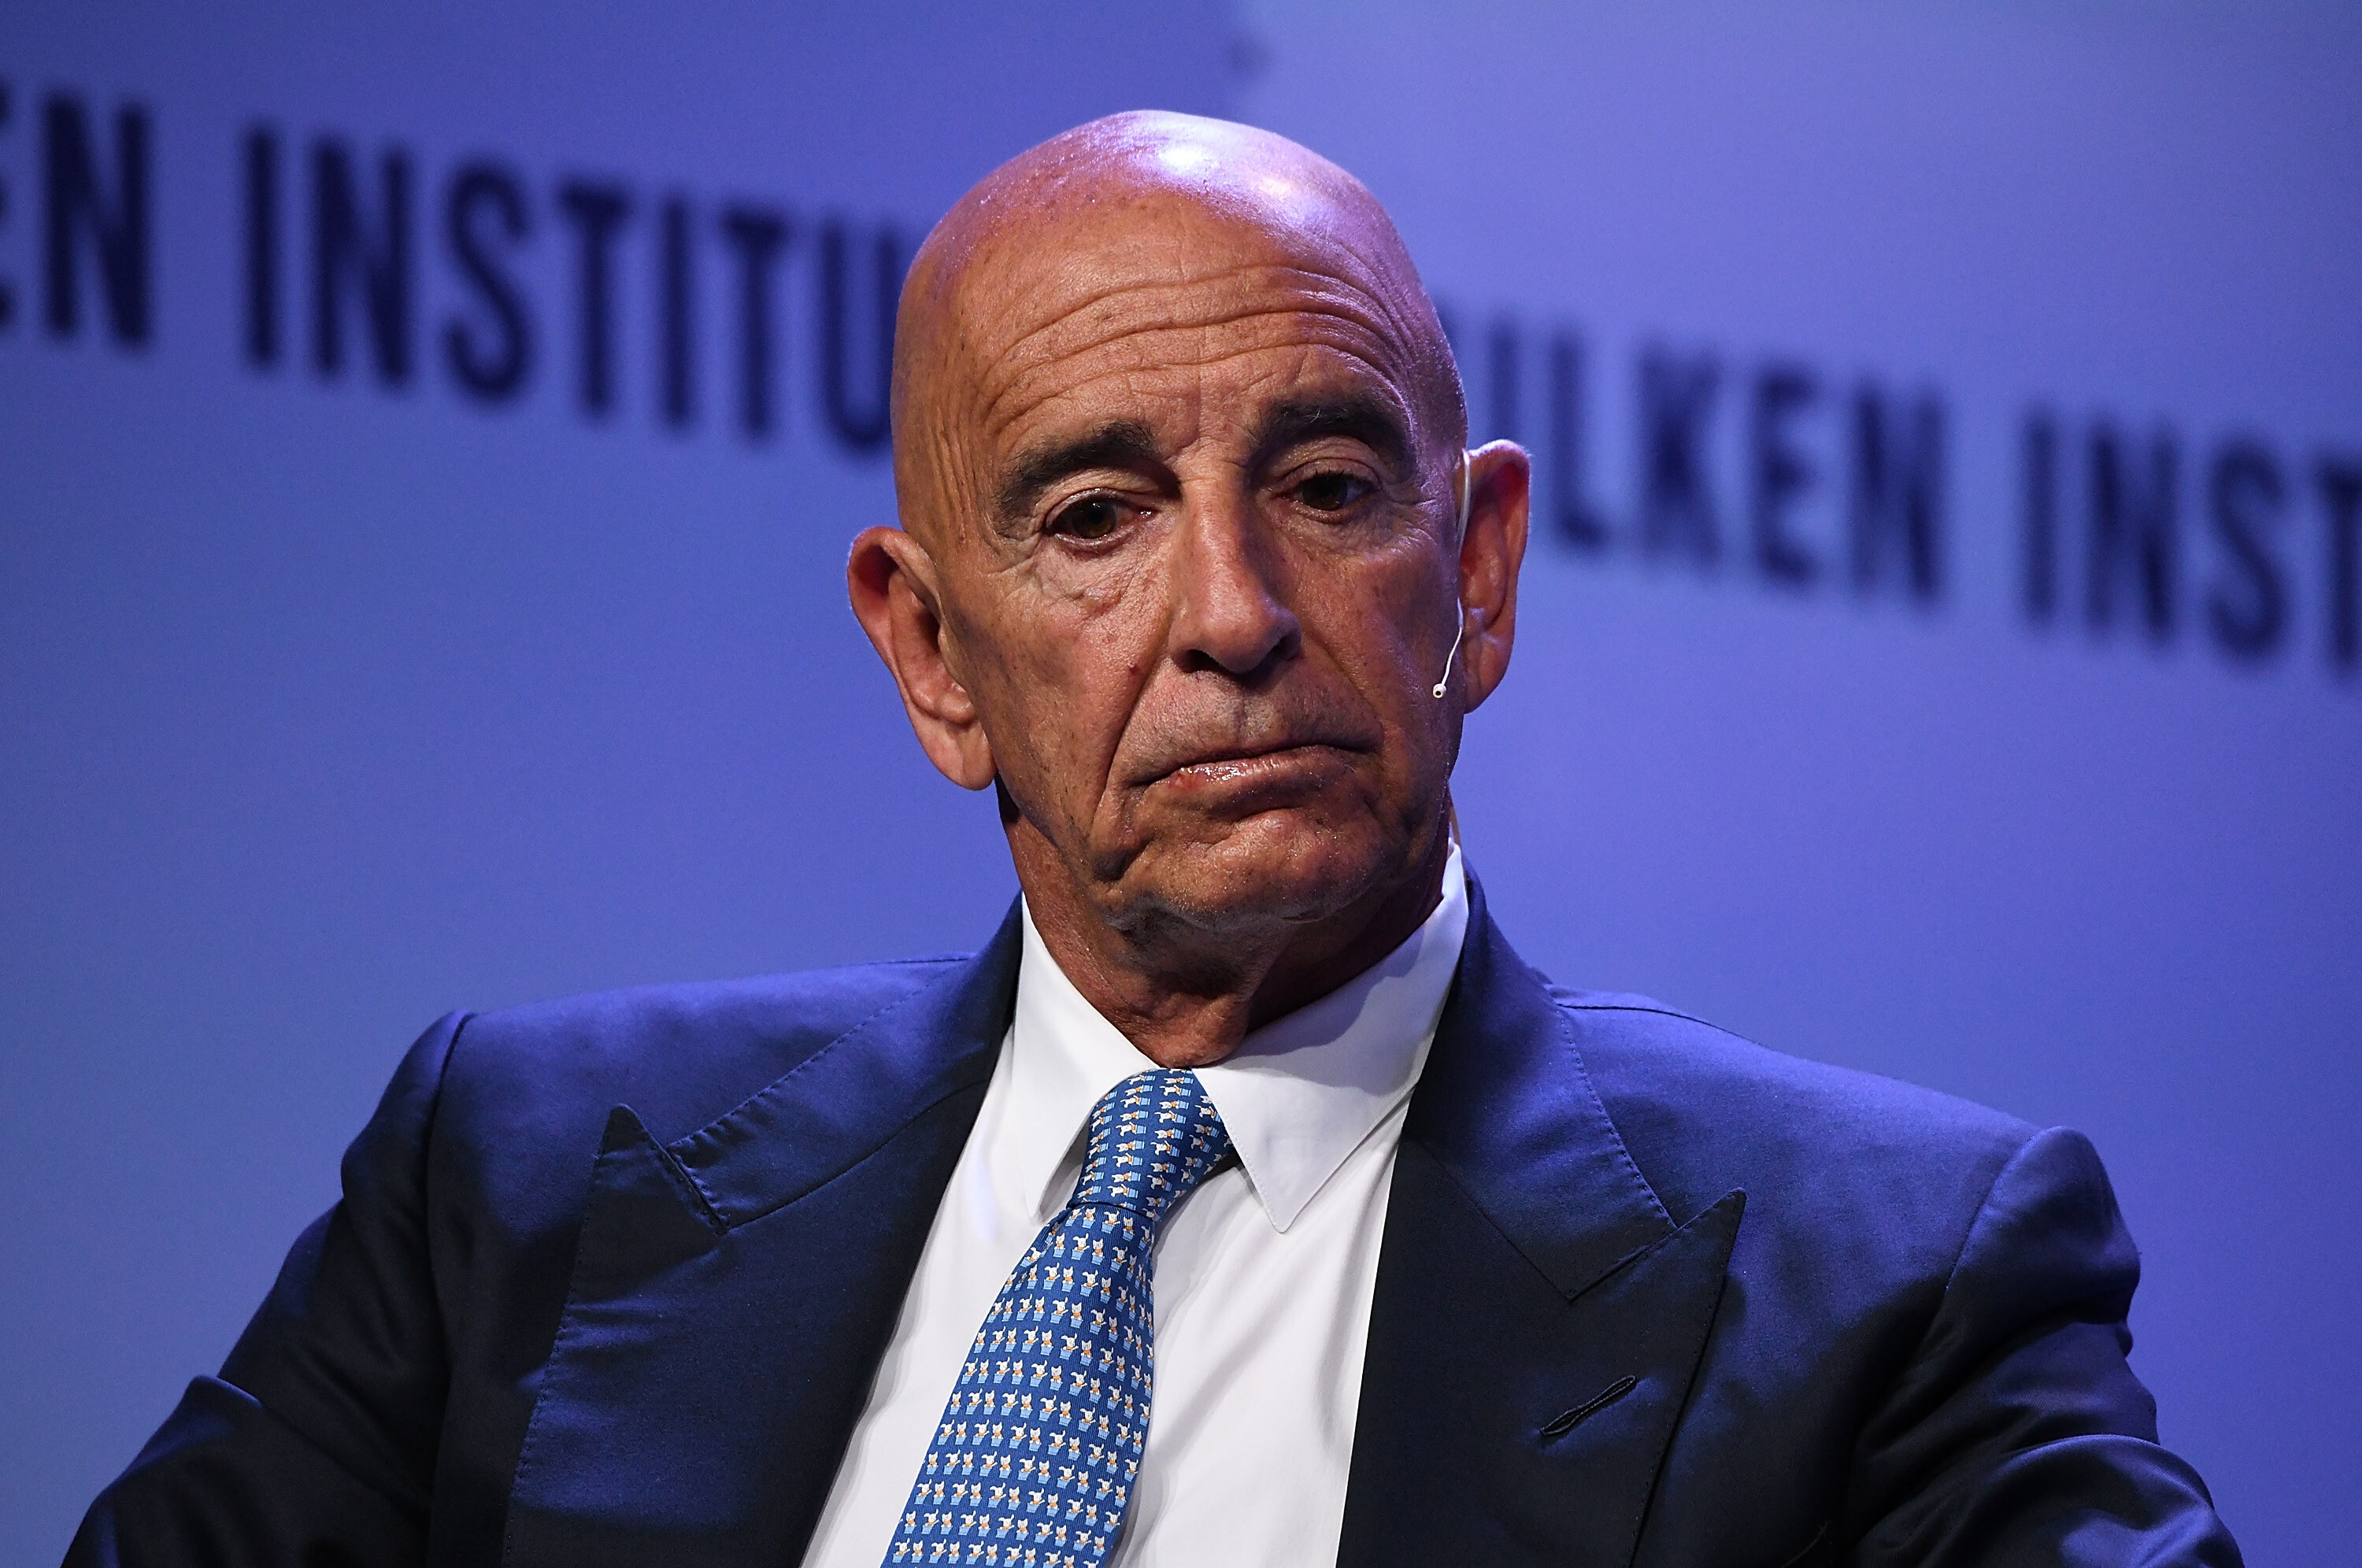 New additions to Tom Barrack's legal team signal former Trump adviser will fight DOJ's charges